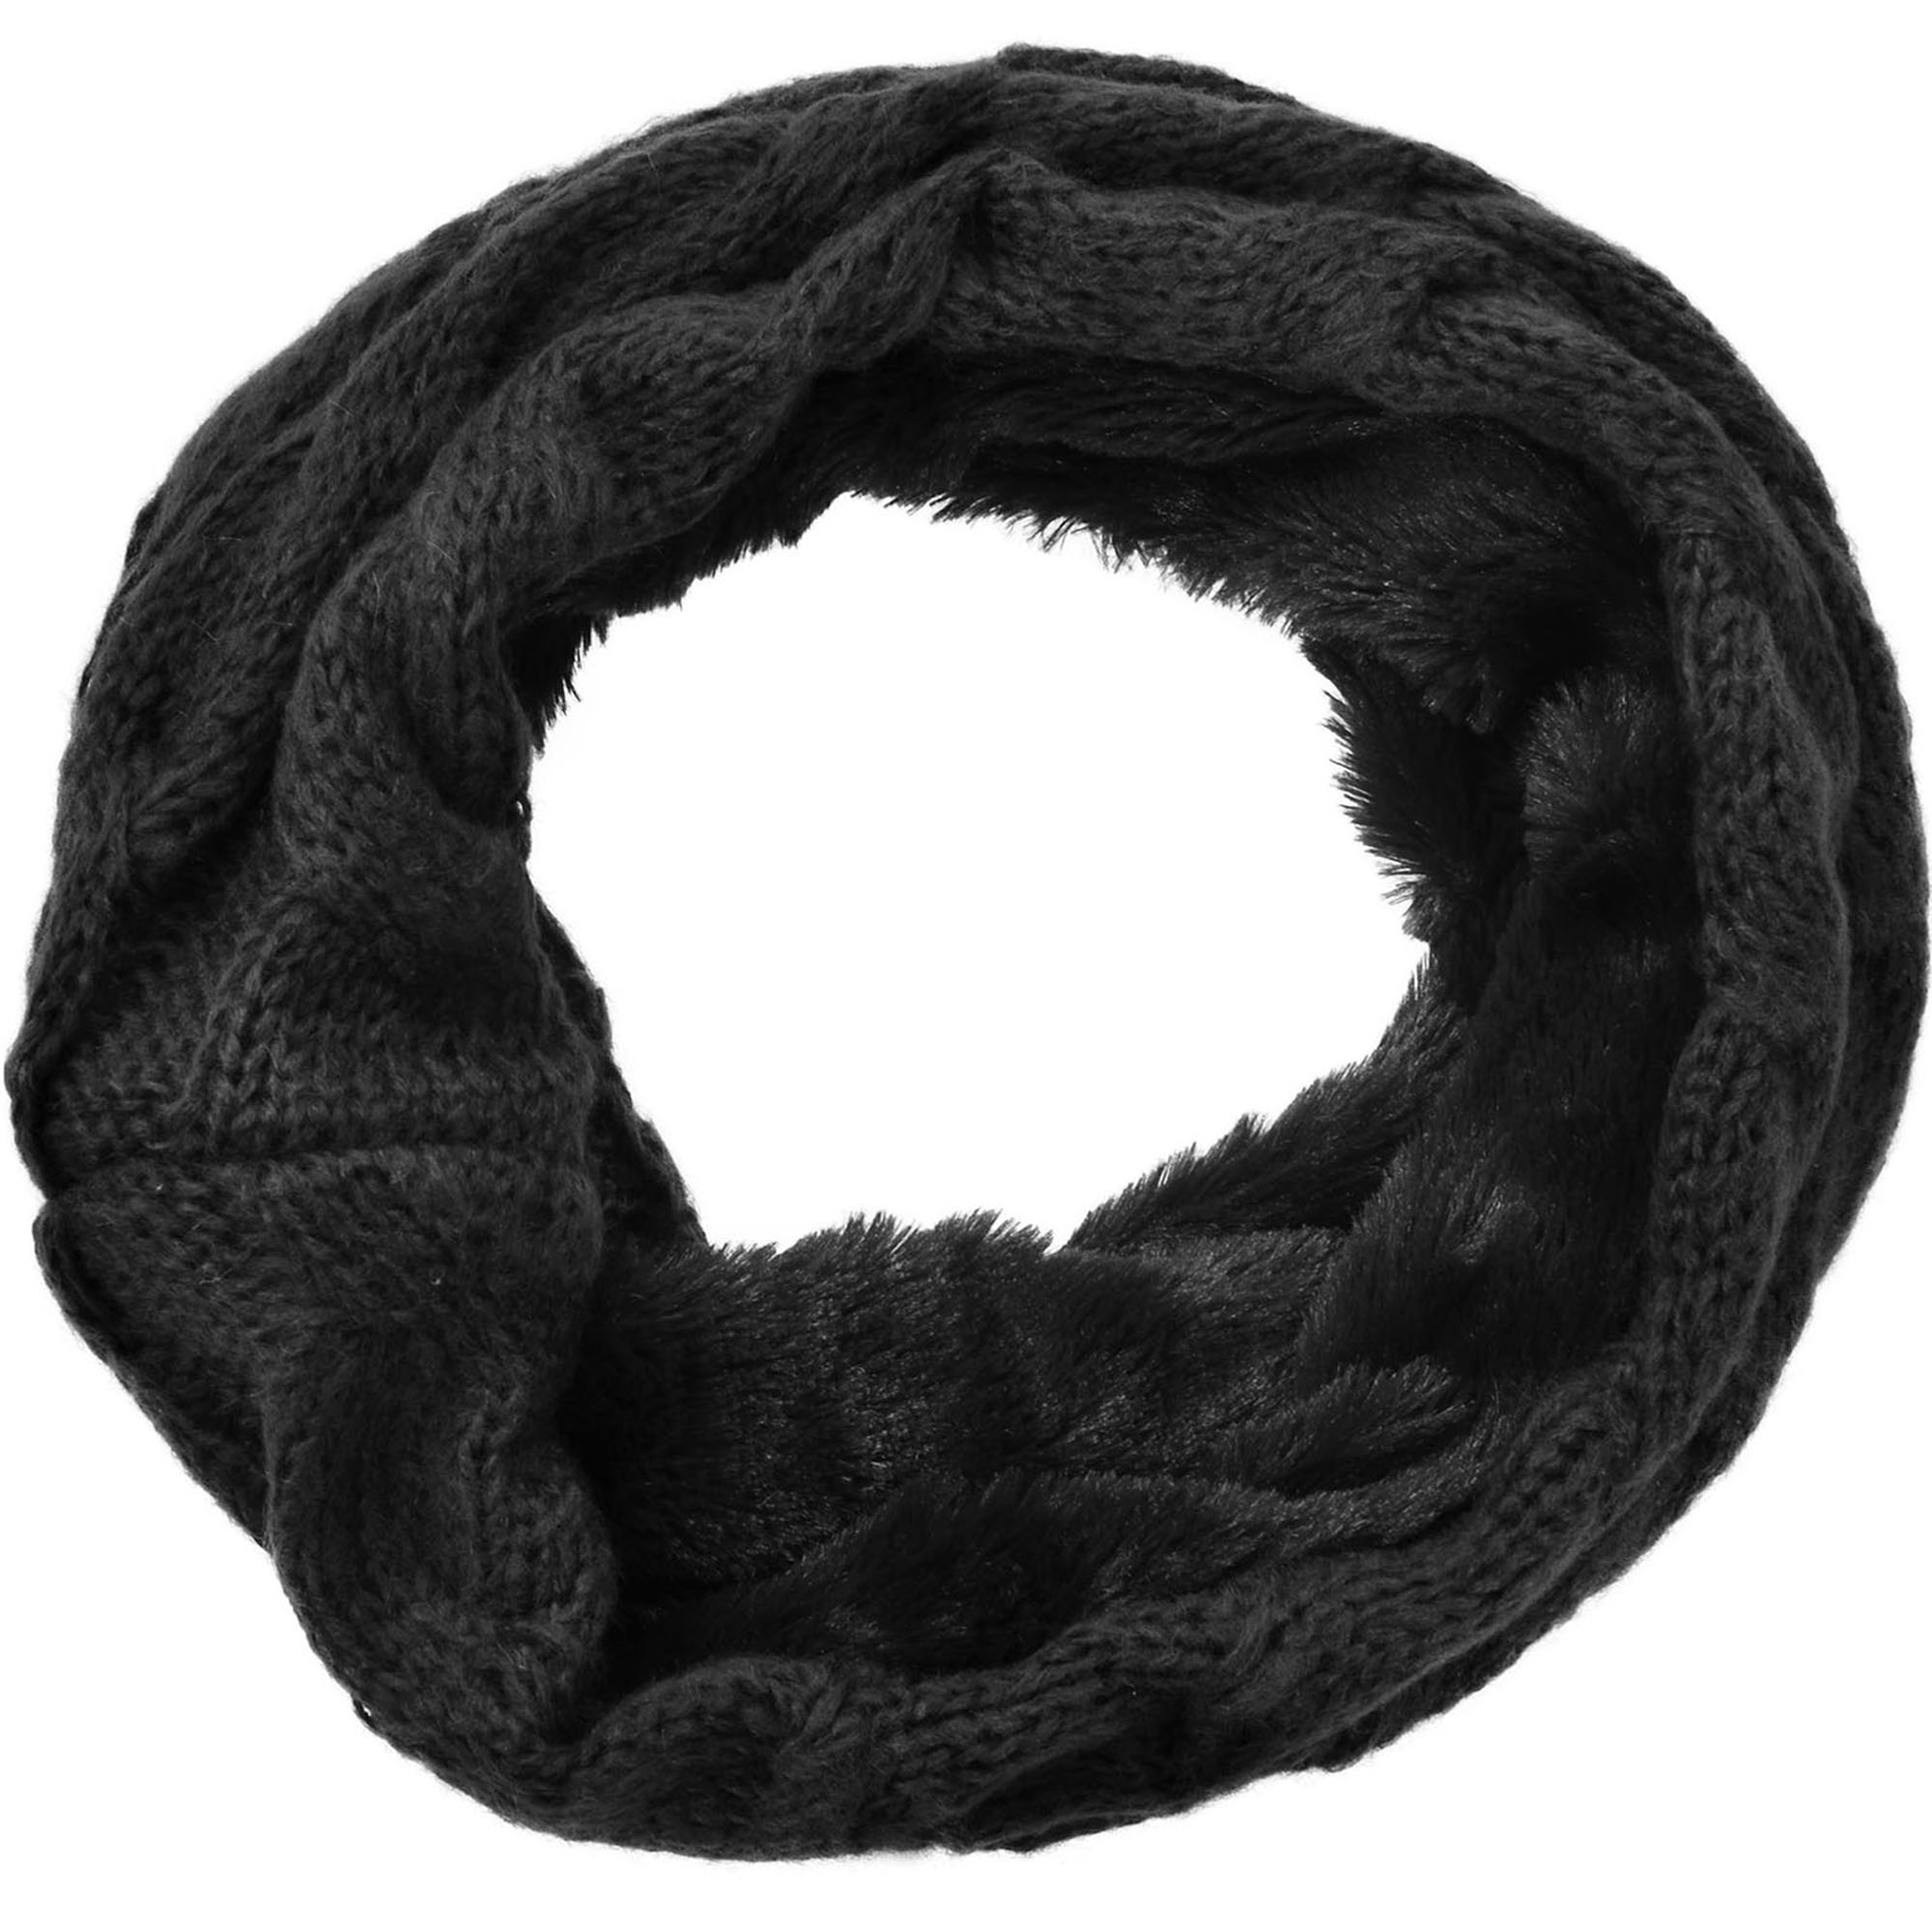 Women's Winter Knit Neck Warmers Fuzzy Cowl Snood Infinity Scarves, Only Scarf 3